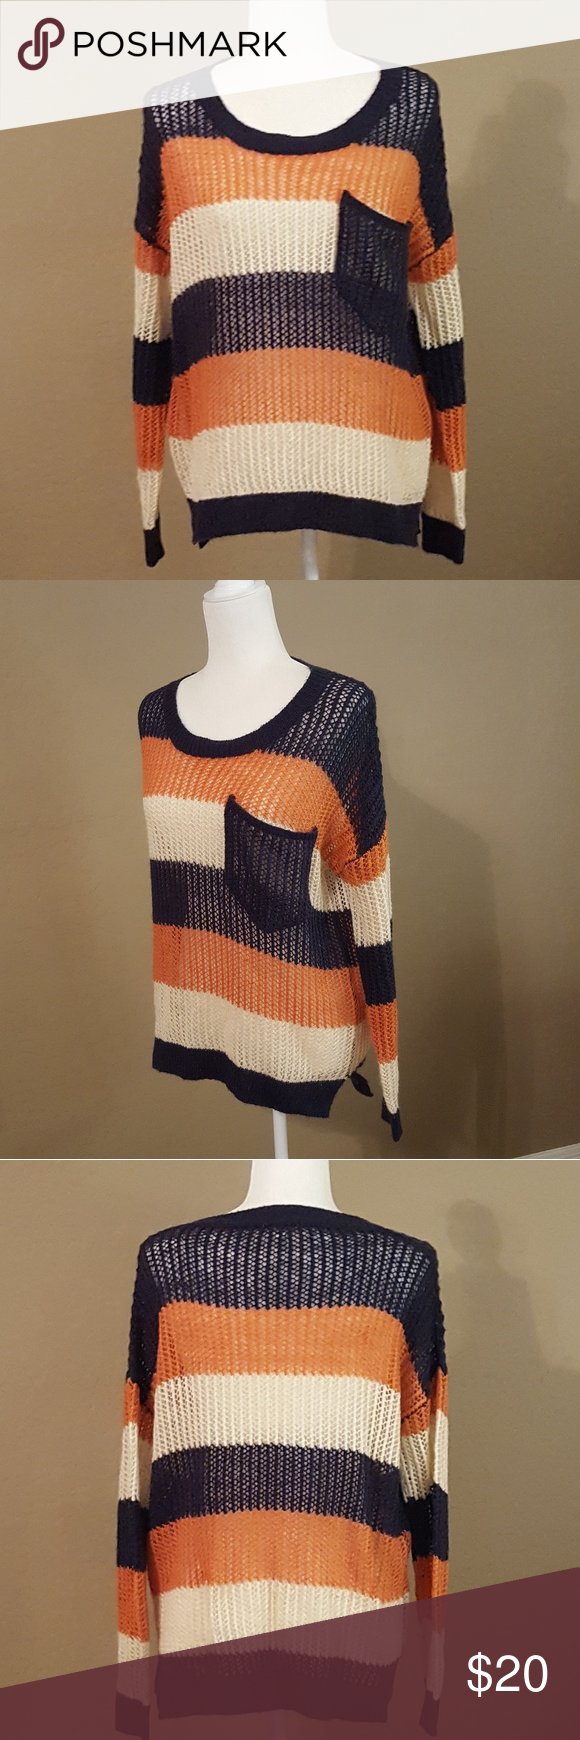 Short Sleeve Cowl Neck Sweater